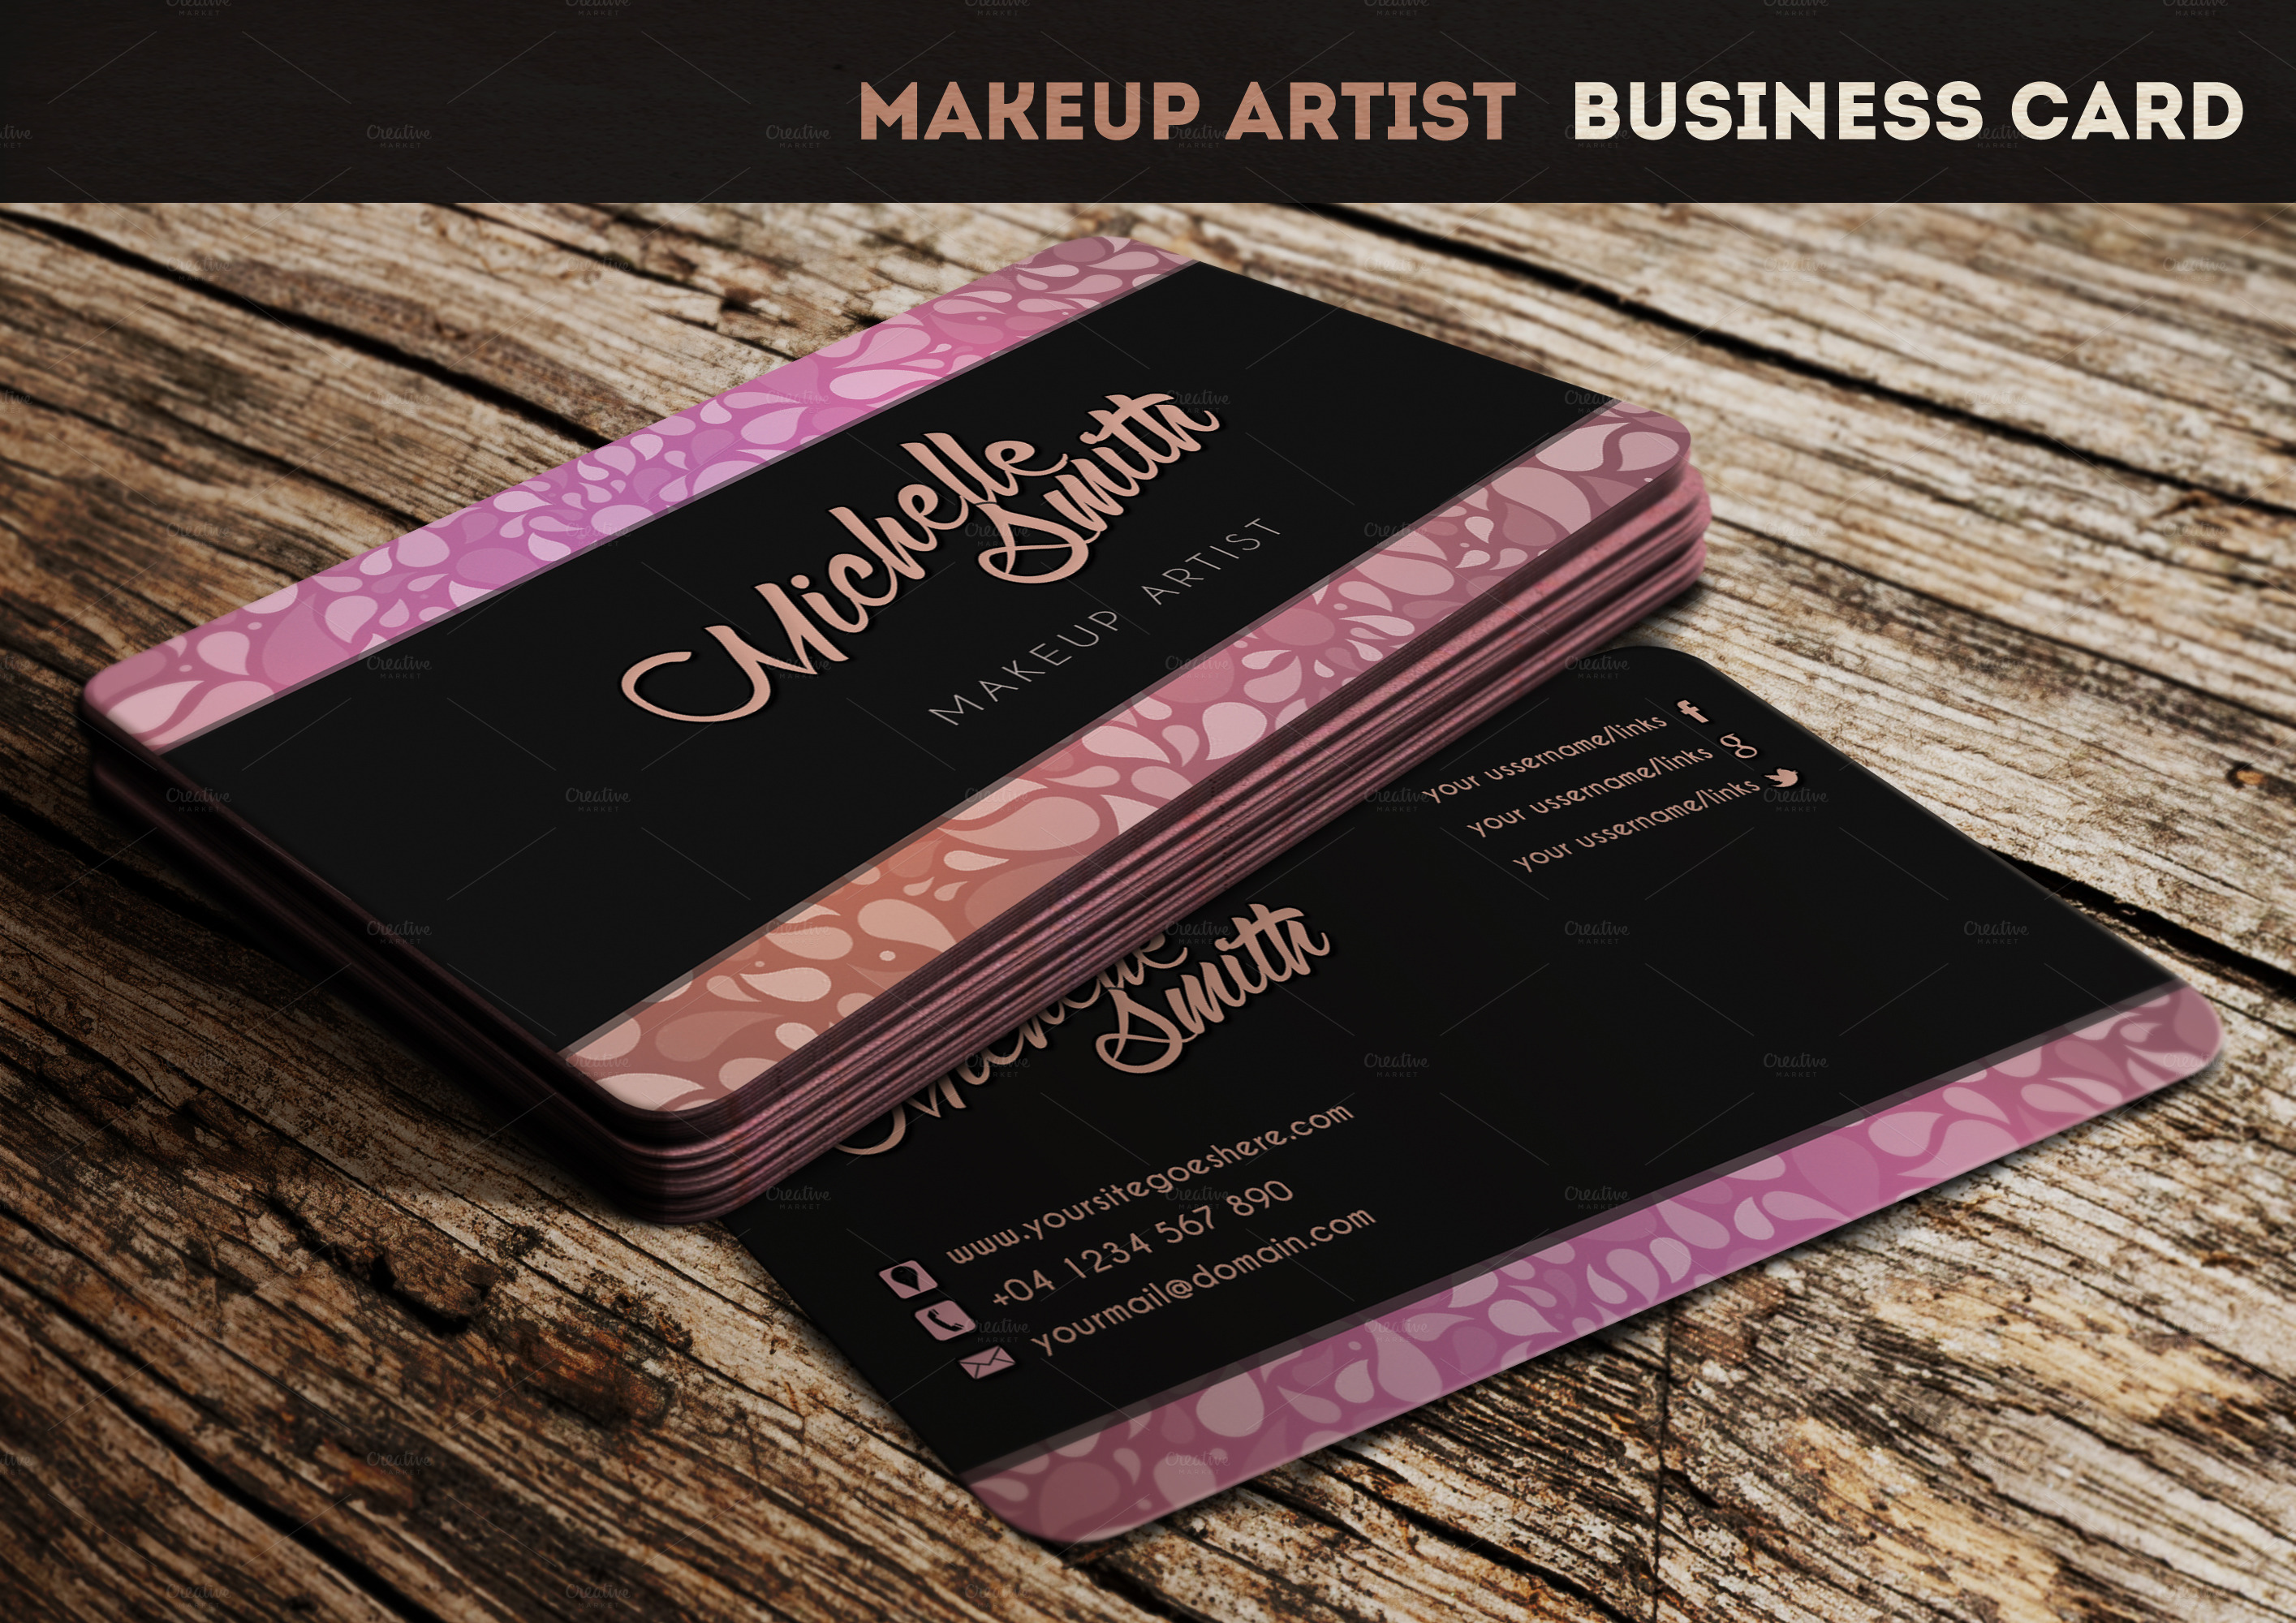 Makeup business cards forteforic makeup business cards colourmoves